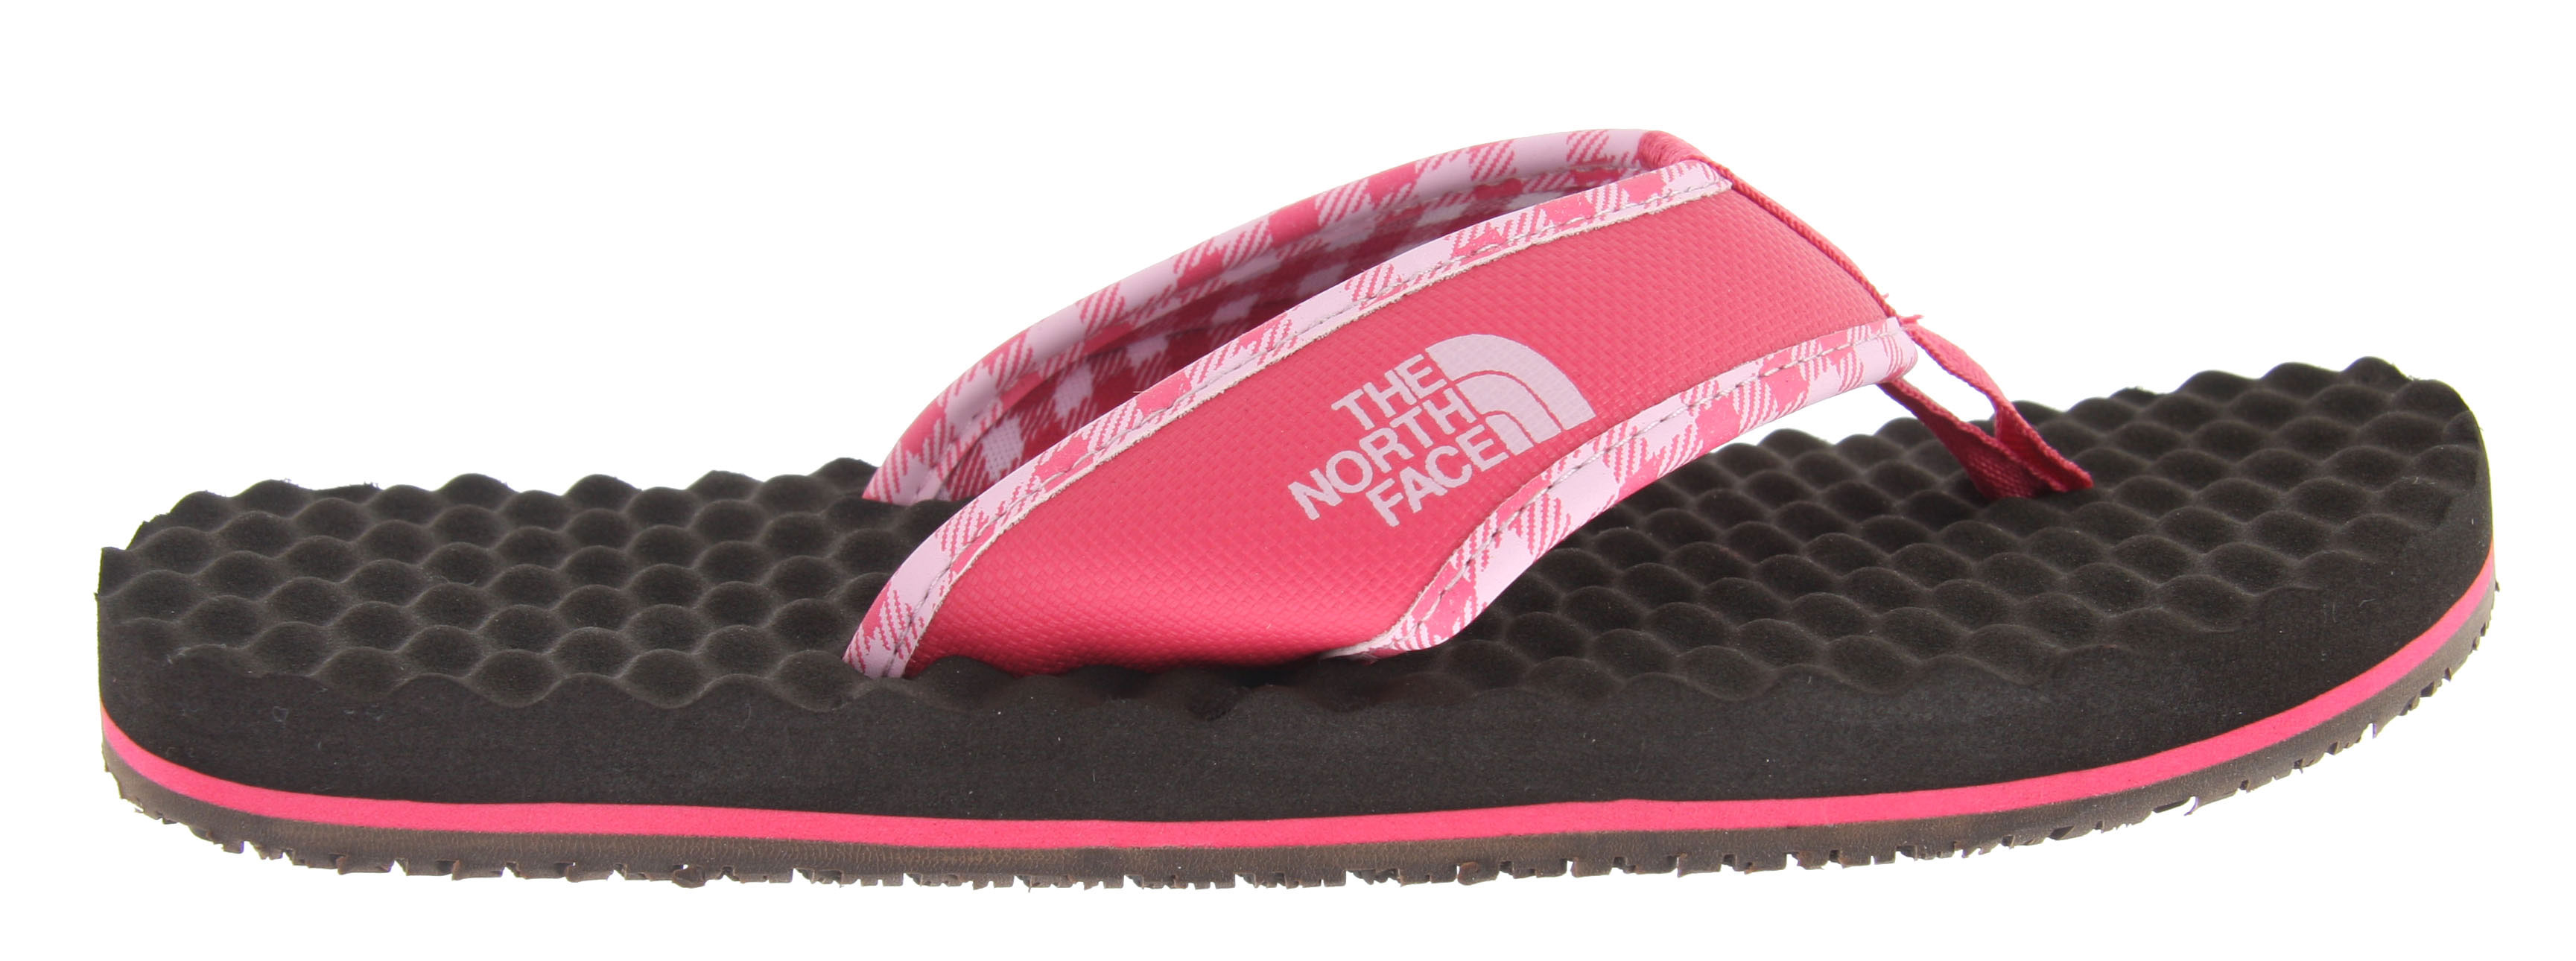 Camp and Hike Classic, rugged style inspired by their hyper-durable expedition equipment, The North Face Base Camp Flip Flop supportive sandal is comfortable and resilient for loads of use.Key Features of The North Face Base Camp Flip Flop Sandals: PVC-free, PU-coated synthetic strap with soft PU binding and jersey lining upper Extra-cushy, egg-crate-inspired EVA footbed with anatomical arch support Rubber outsole - $23.95